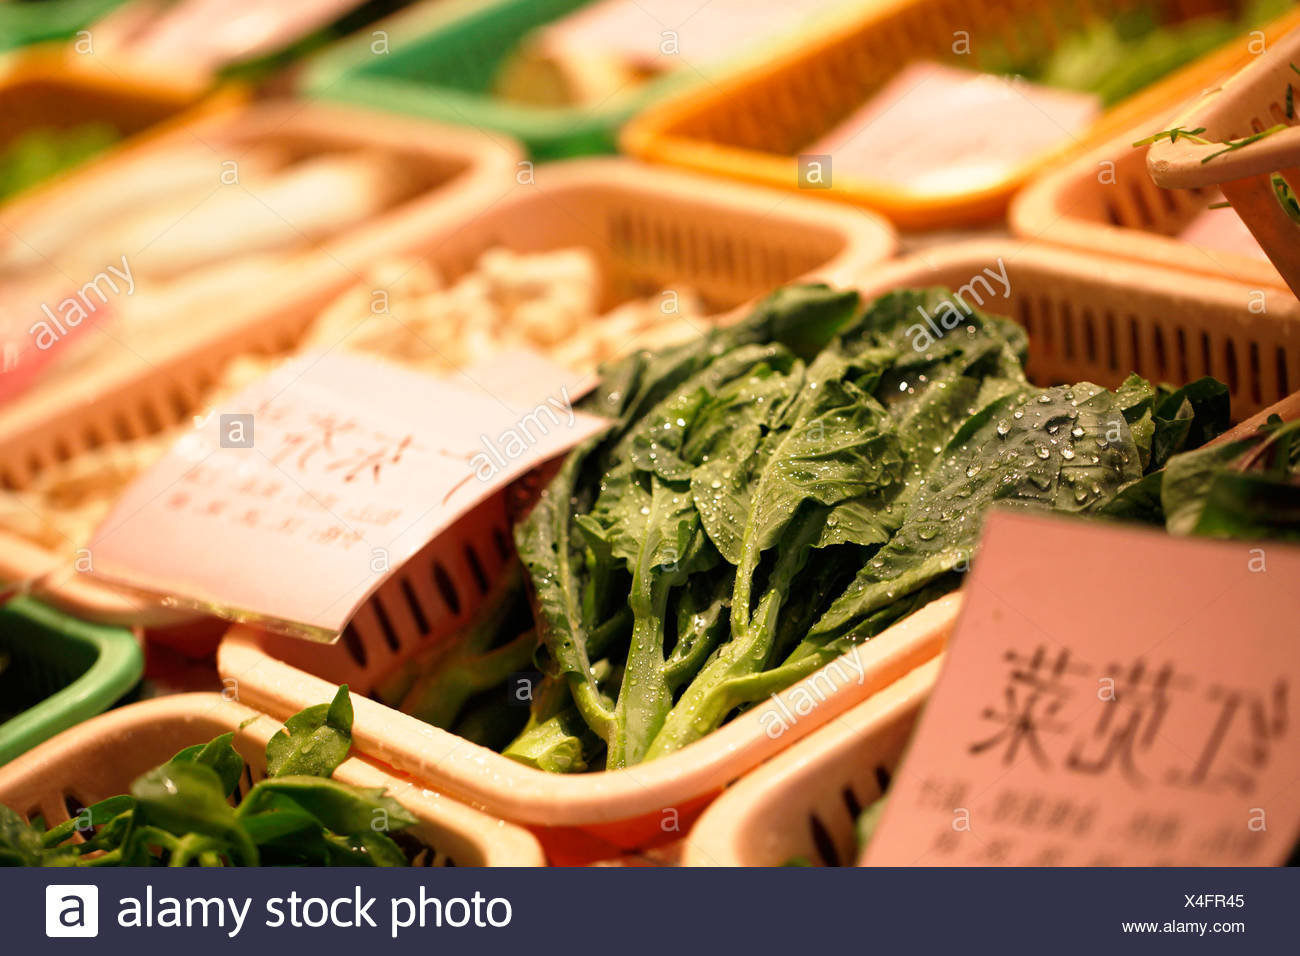 Vegetables displayed at a restaurant, Xiamen, also known as Amoy, Fujian province, China, Asia - Stock Image